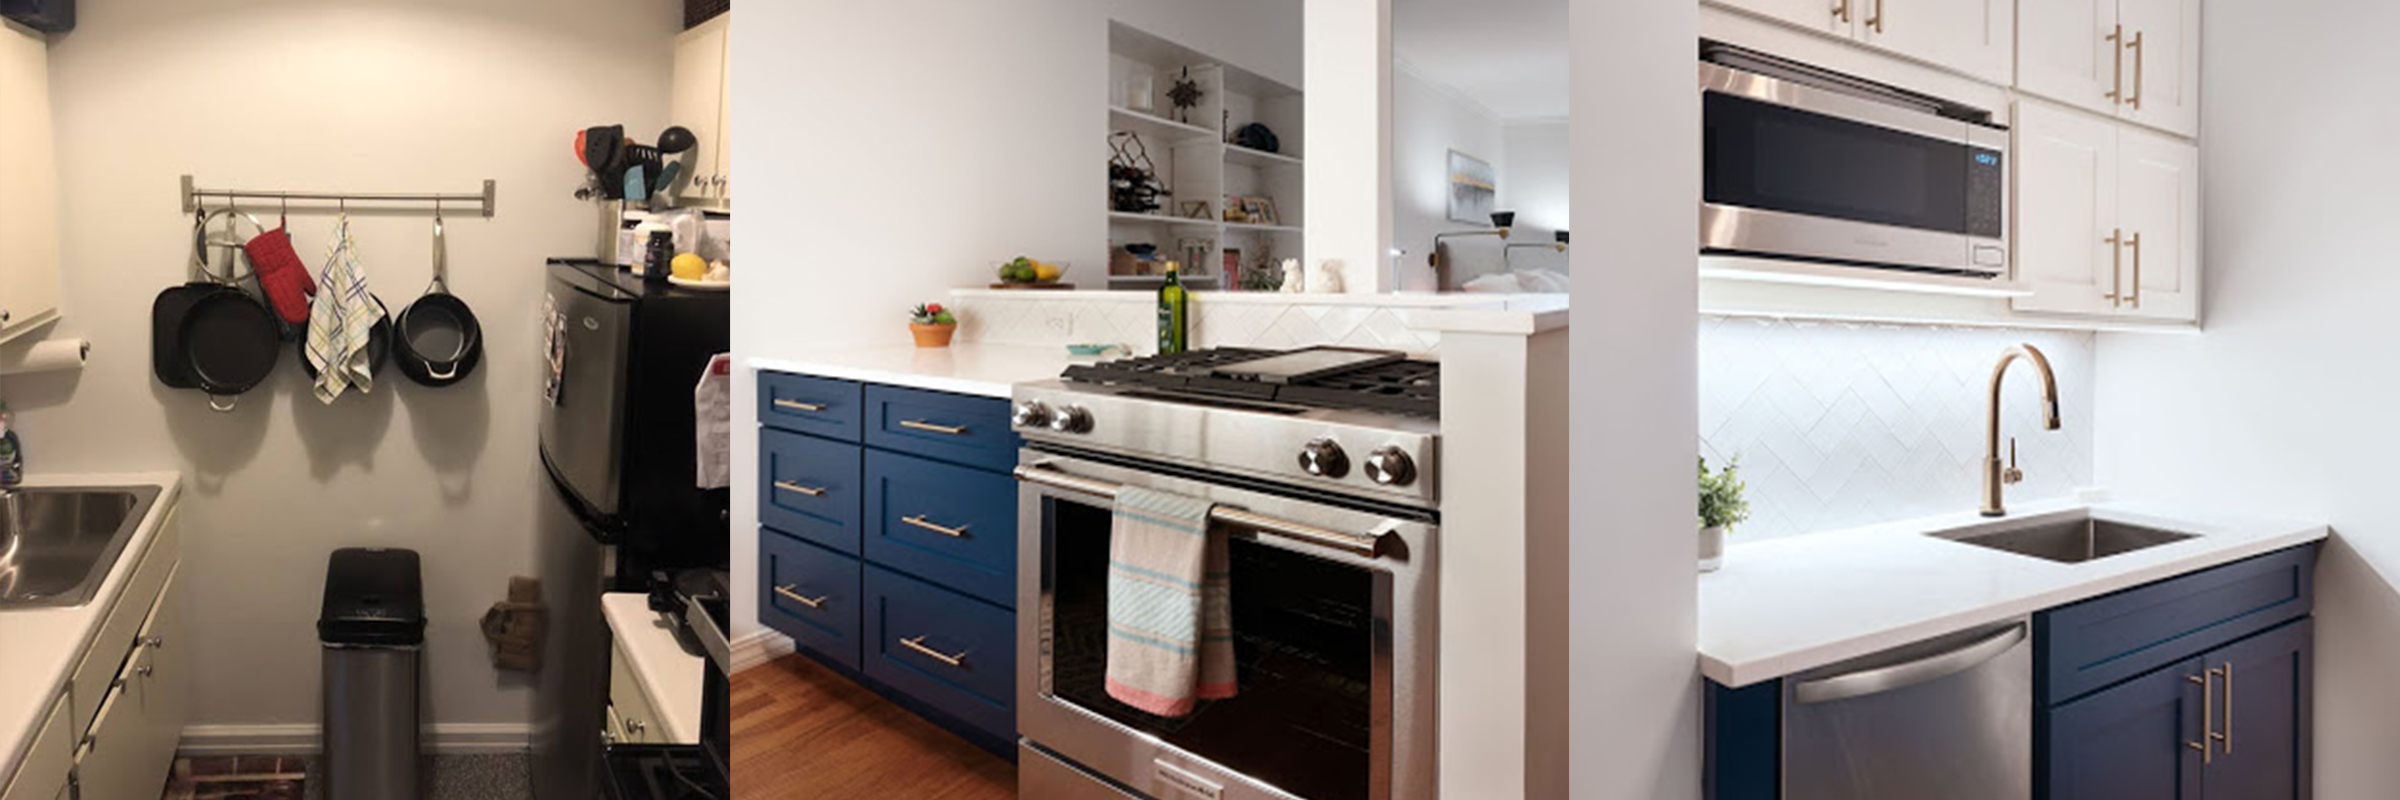 small remodel kitchen